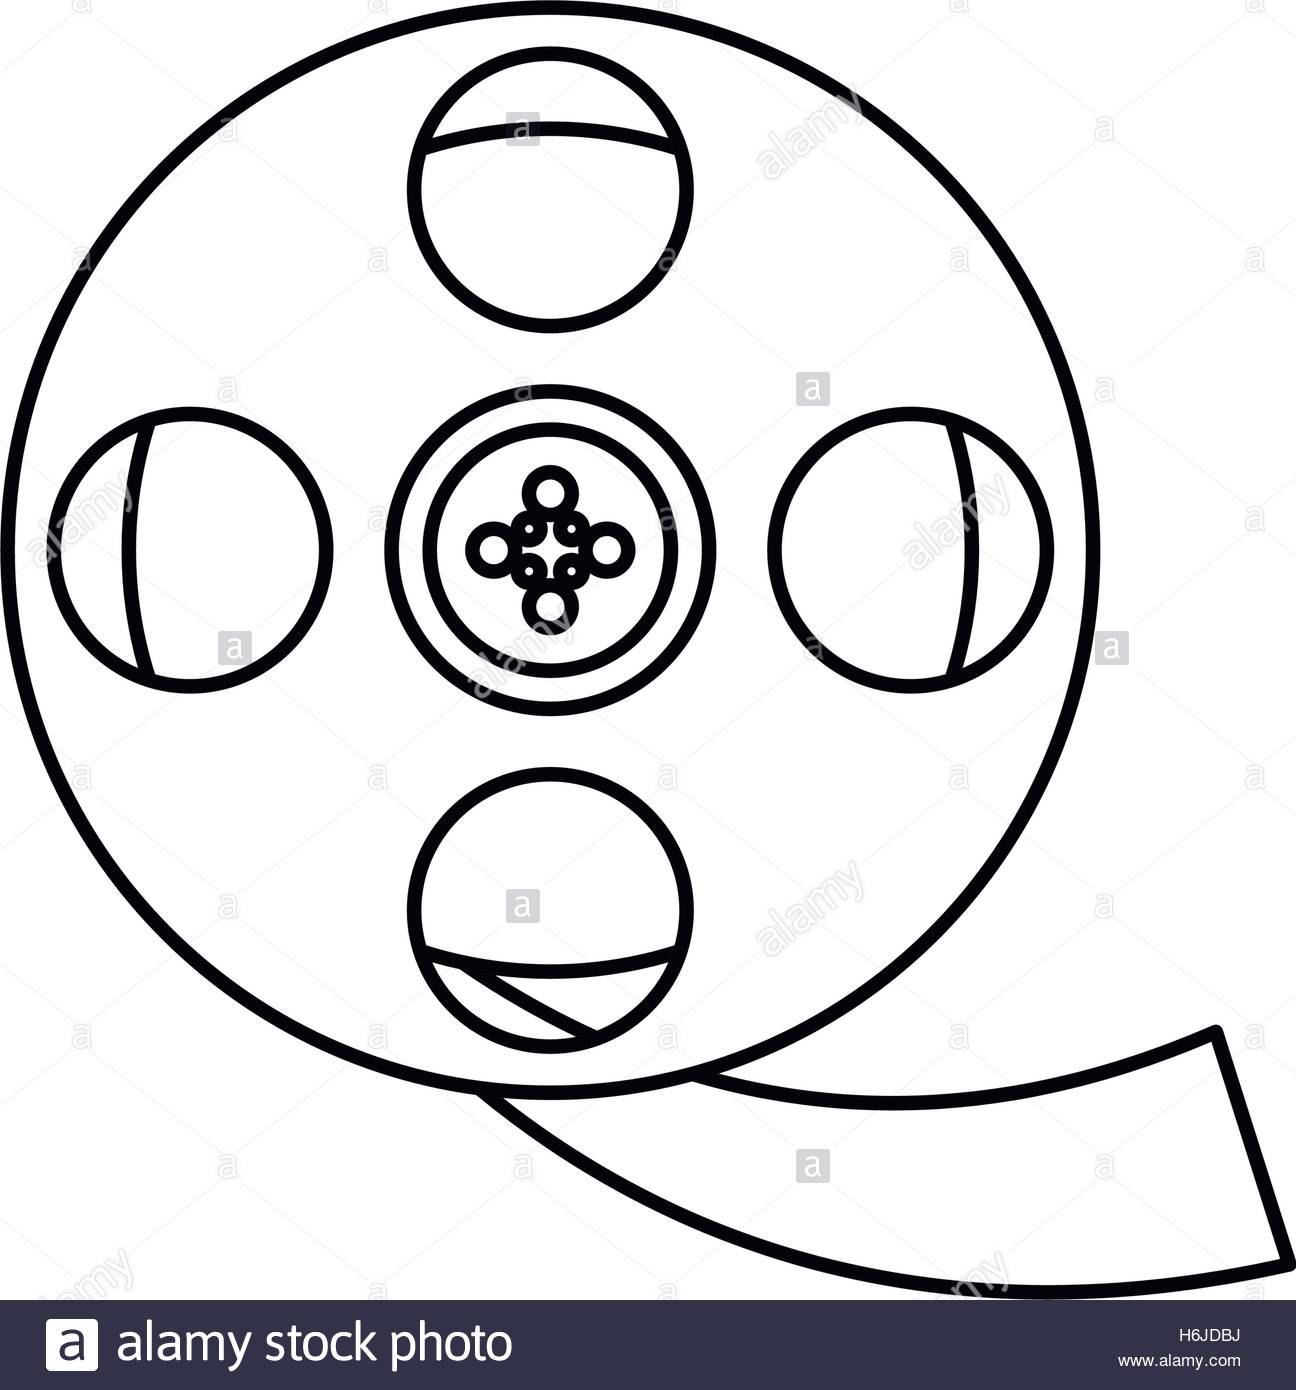 1296x1390 Isolated Cinema Film Reel Design Stock Vector Art Amp Illustration